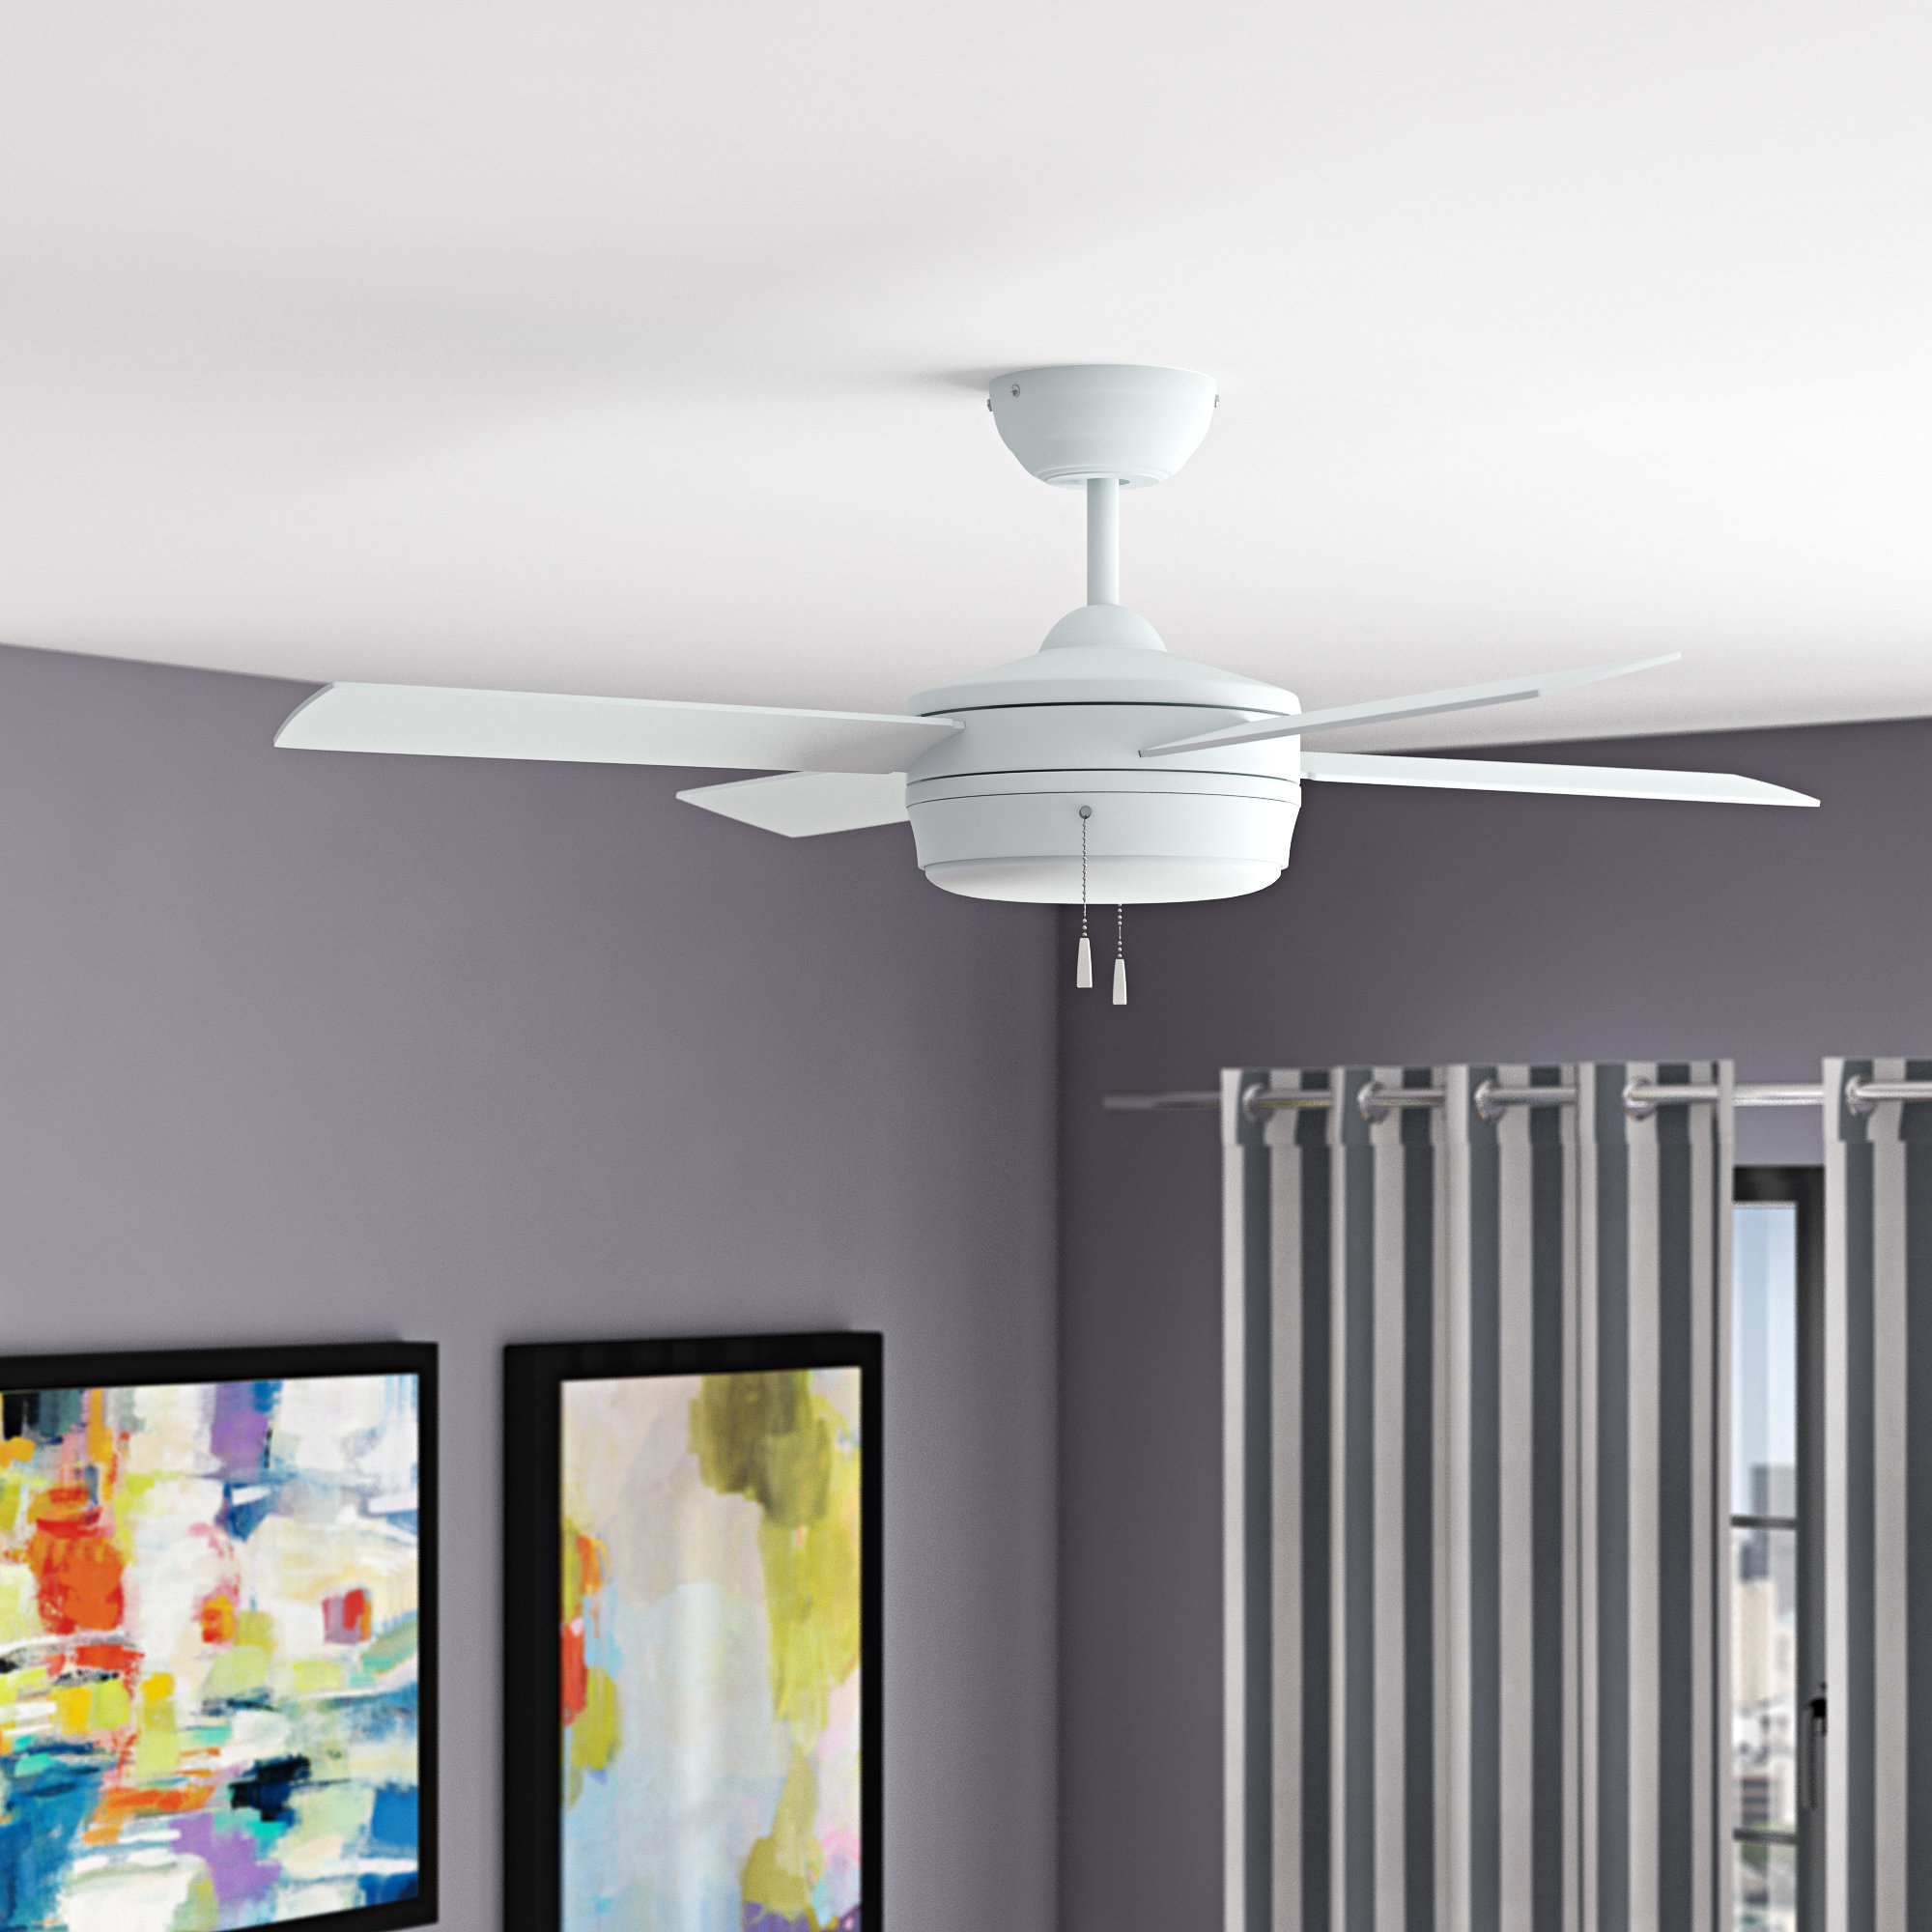 """Moriarty 44"""" 4 Blade Ceiling Fan Throughout Most Recently Released Stewardson 4 Blade Ceiling Fans (View 8 of 20)"""